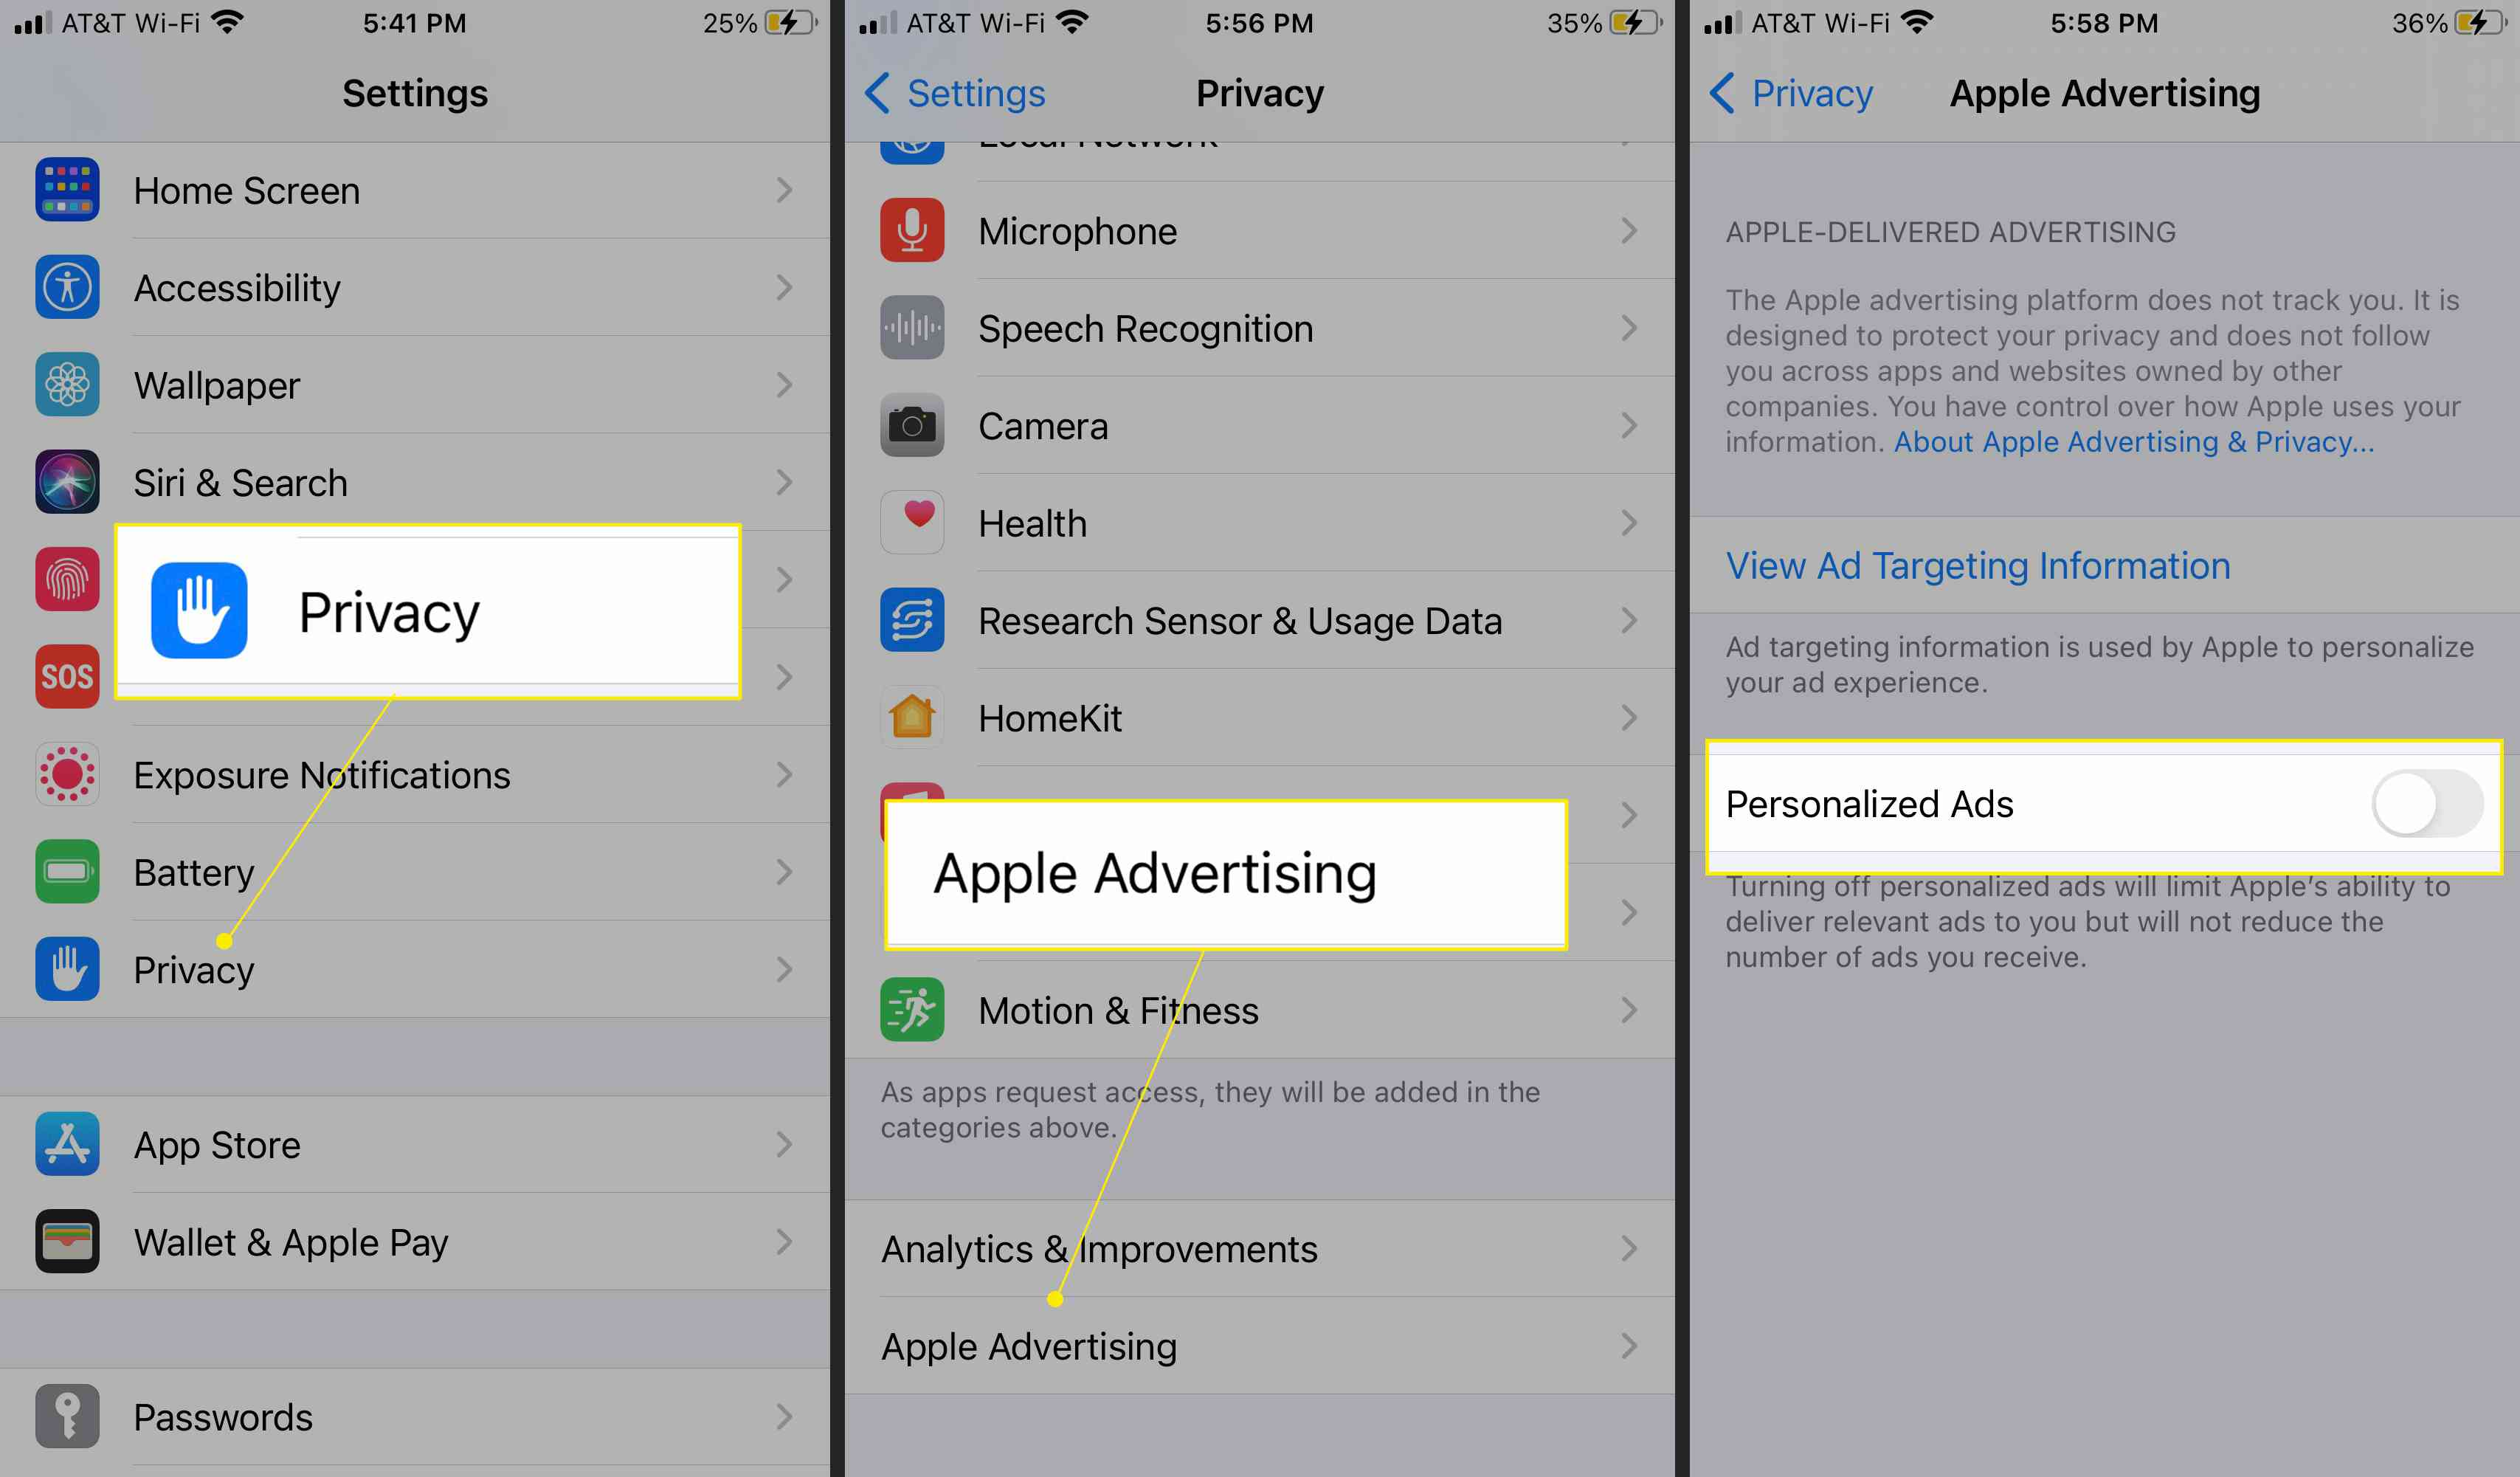 iPhone Privacy Settings highlighting